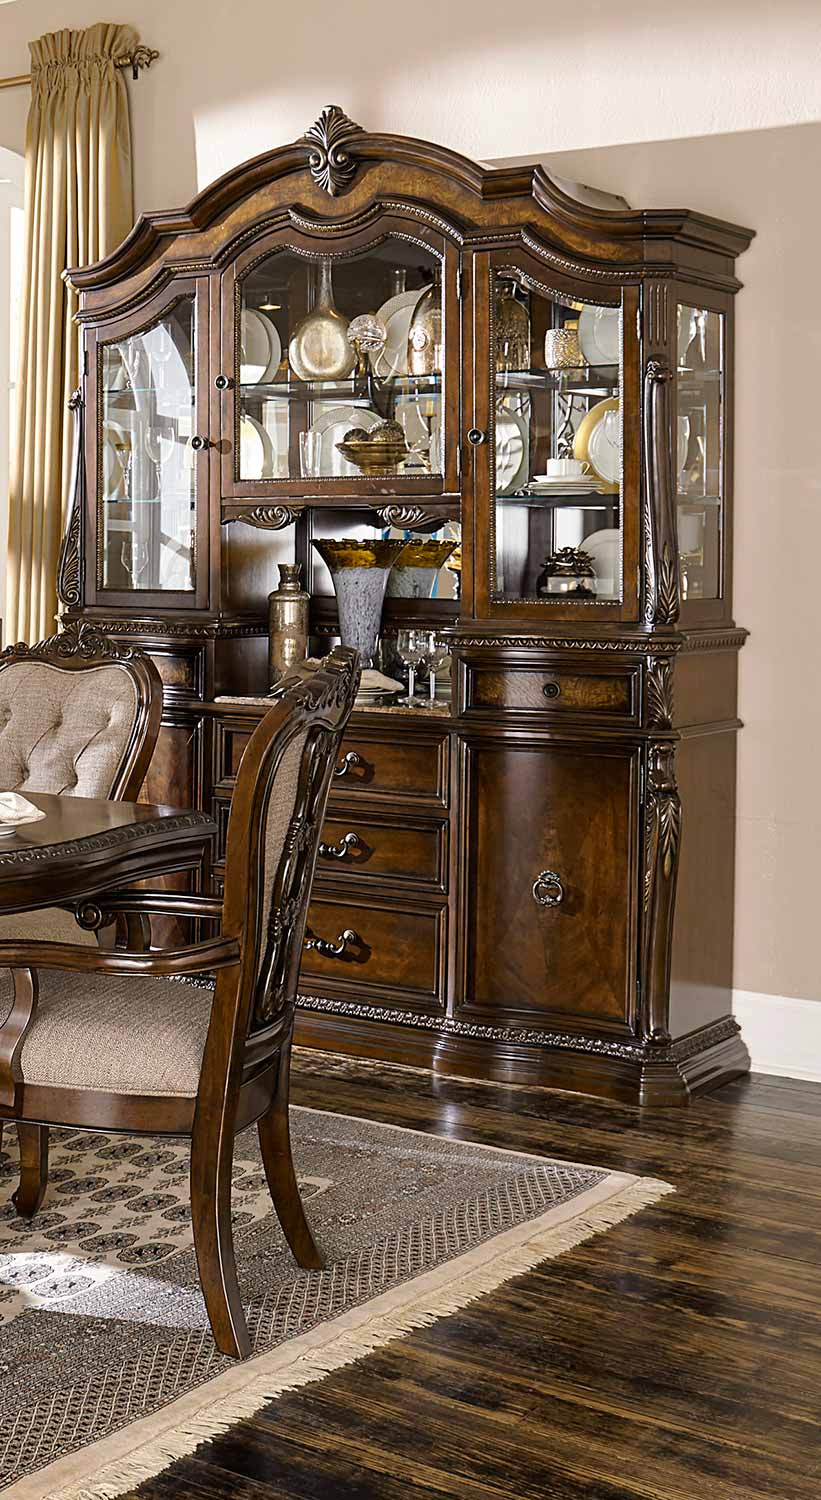 Homelegance Bonaventure Park China Cabinet - Gold-Highlighted Cherry